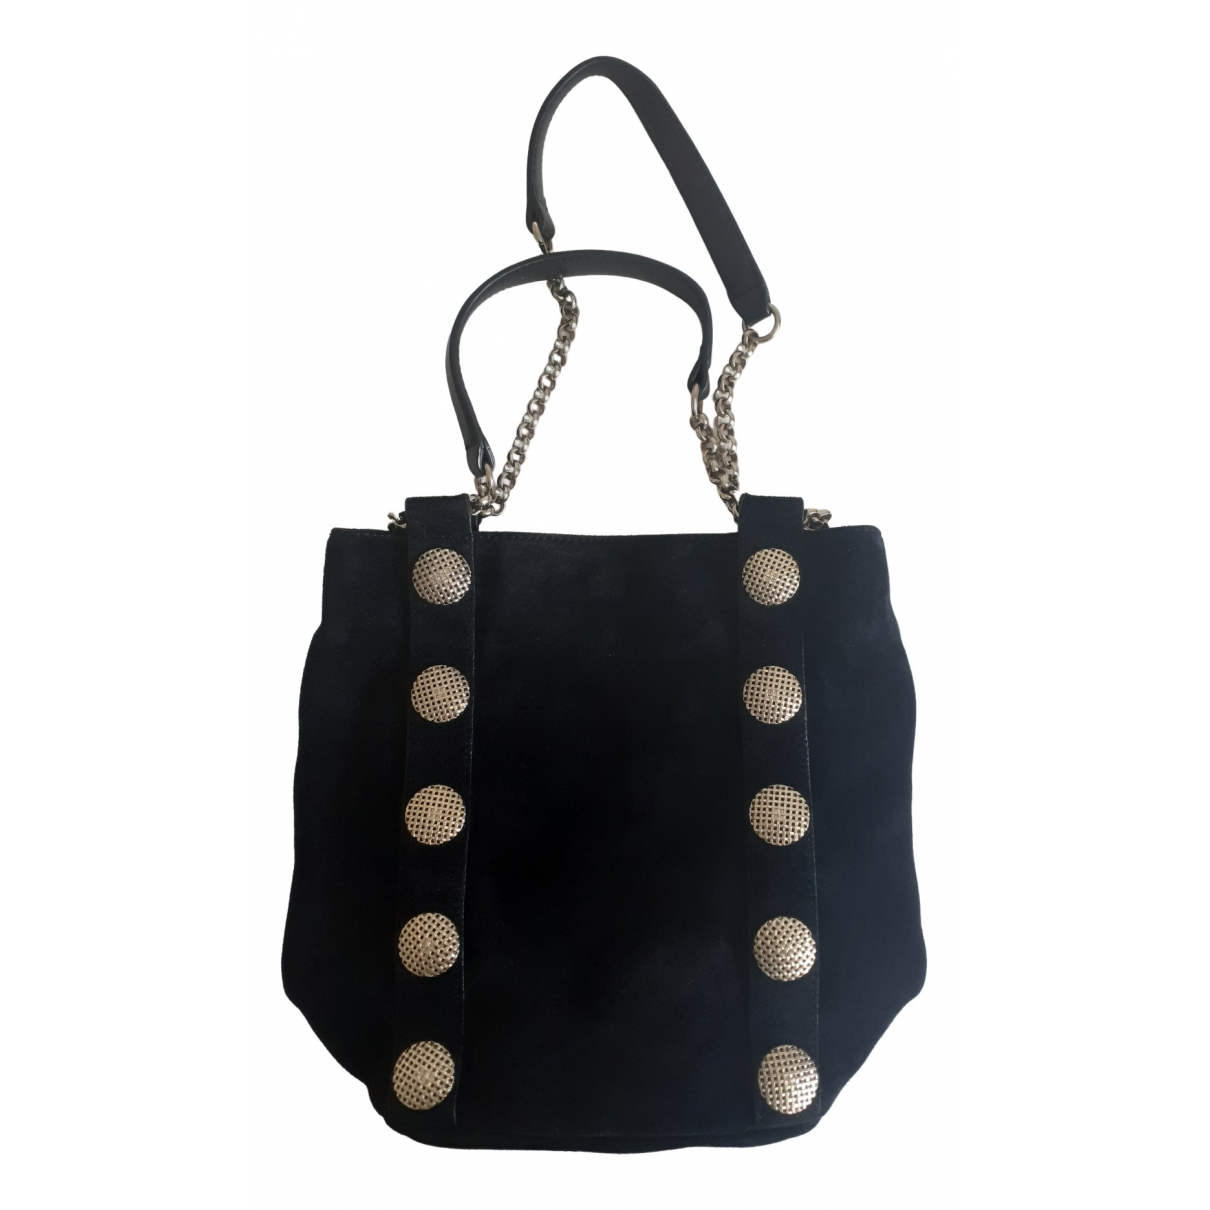 Reiss \N Black Suede handbag for Women \N